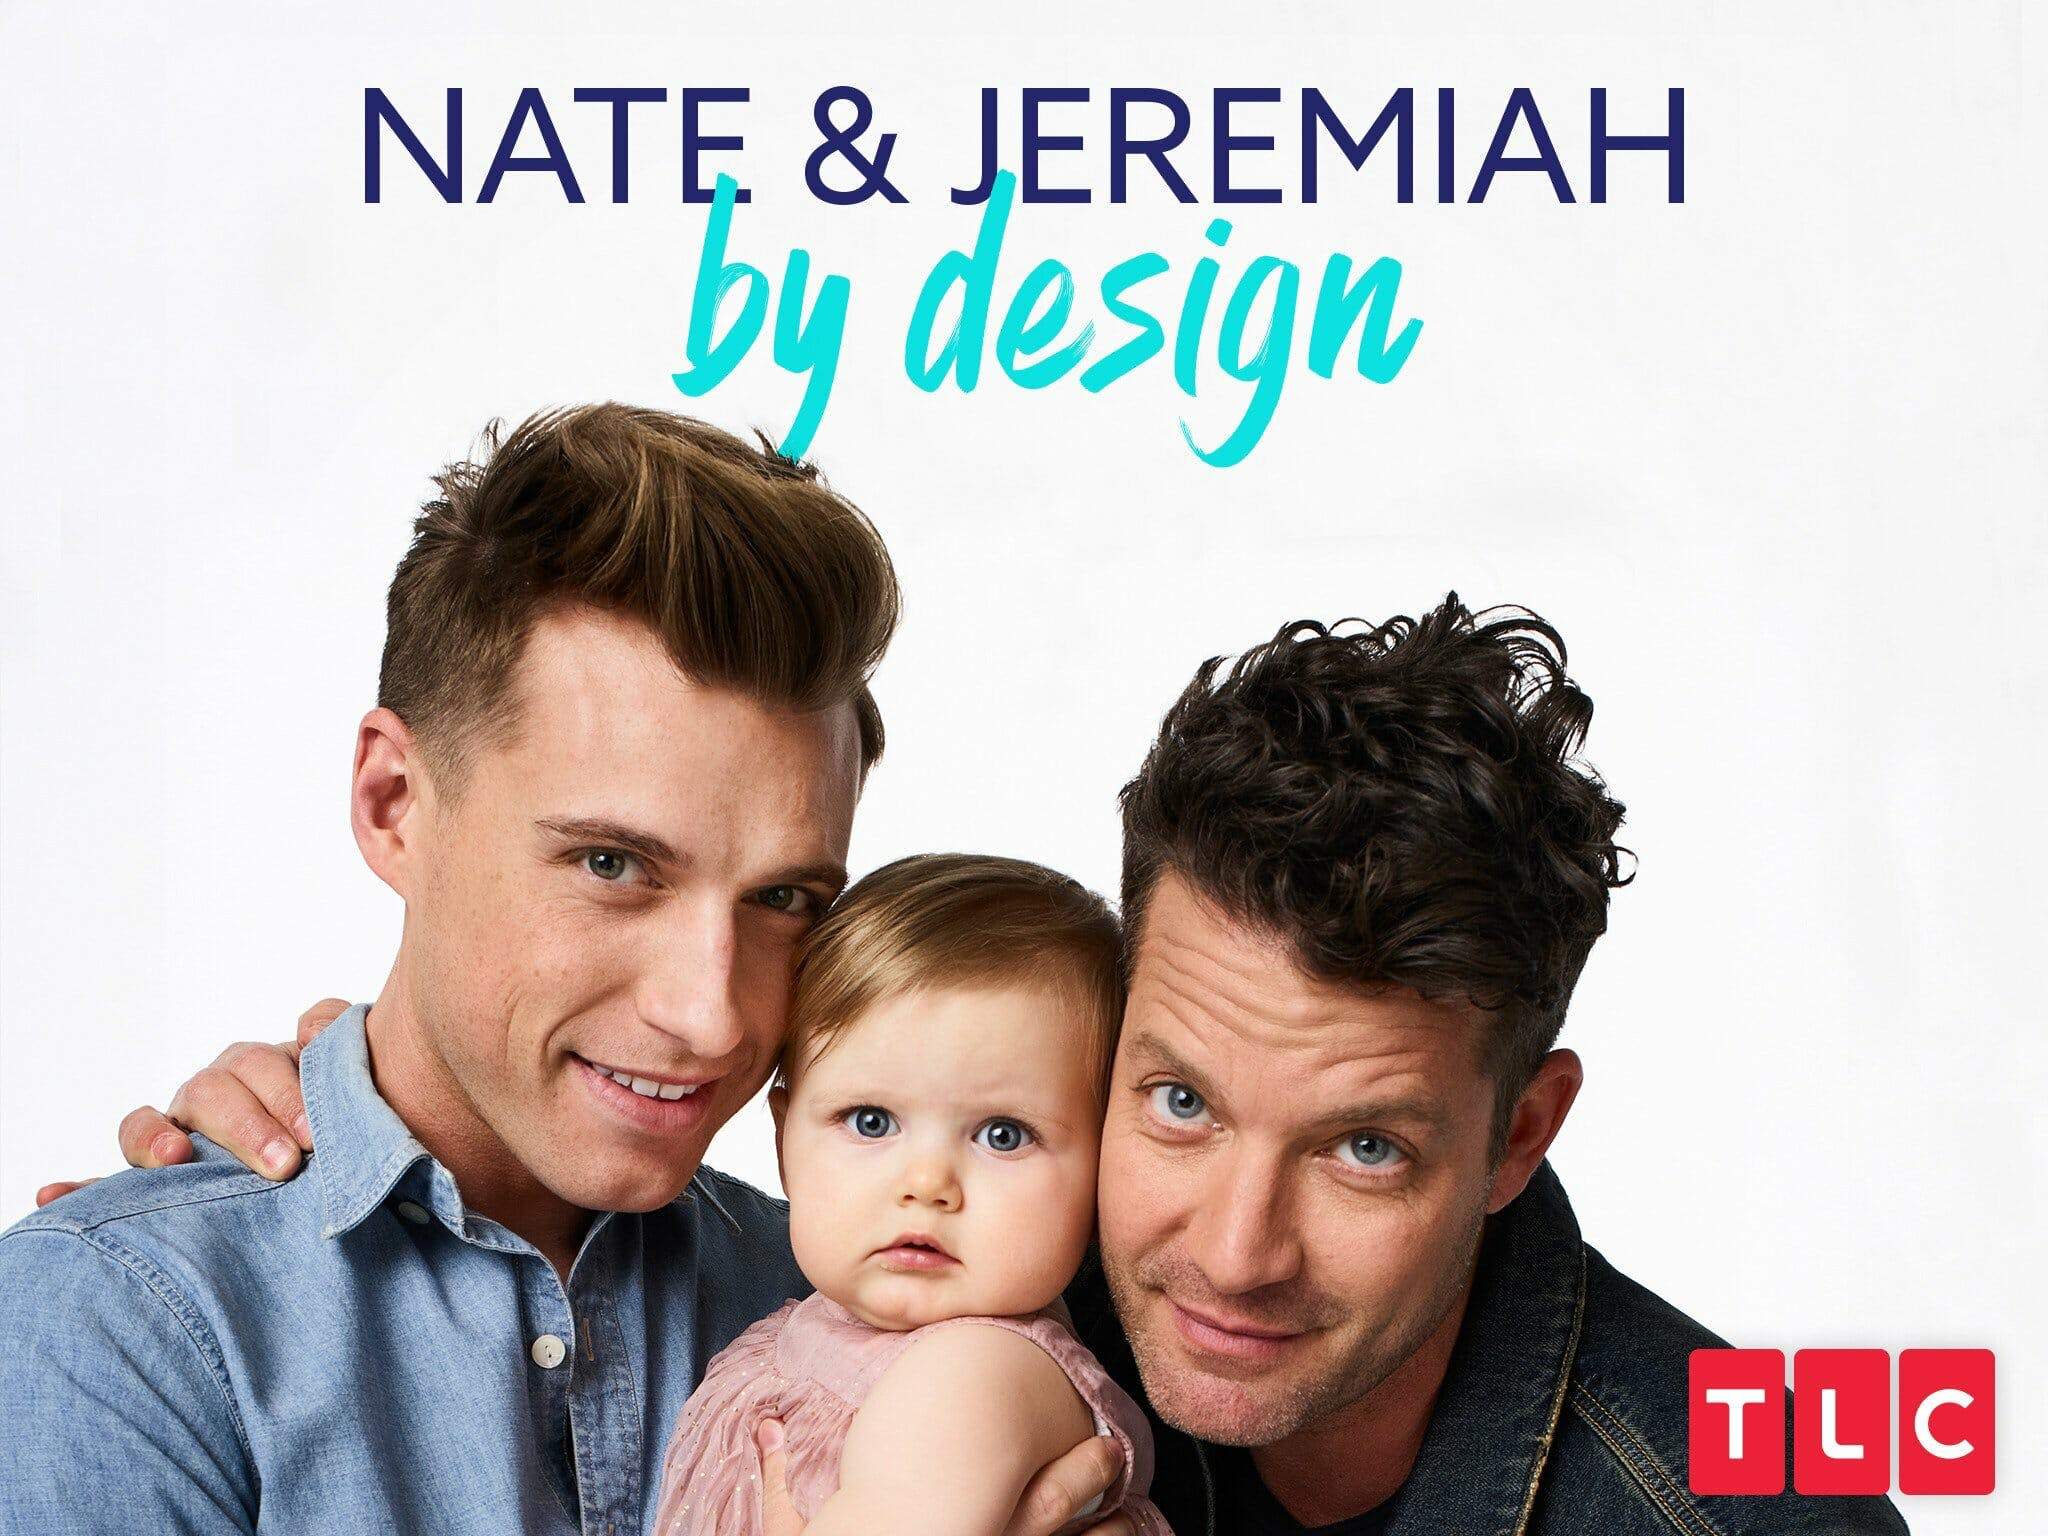 watch Nate and Jeremiah by design season 3 online free on Amazon